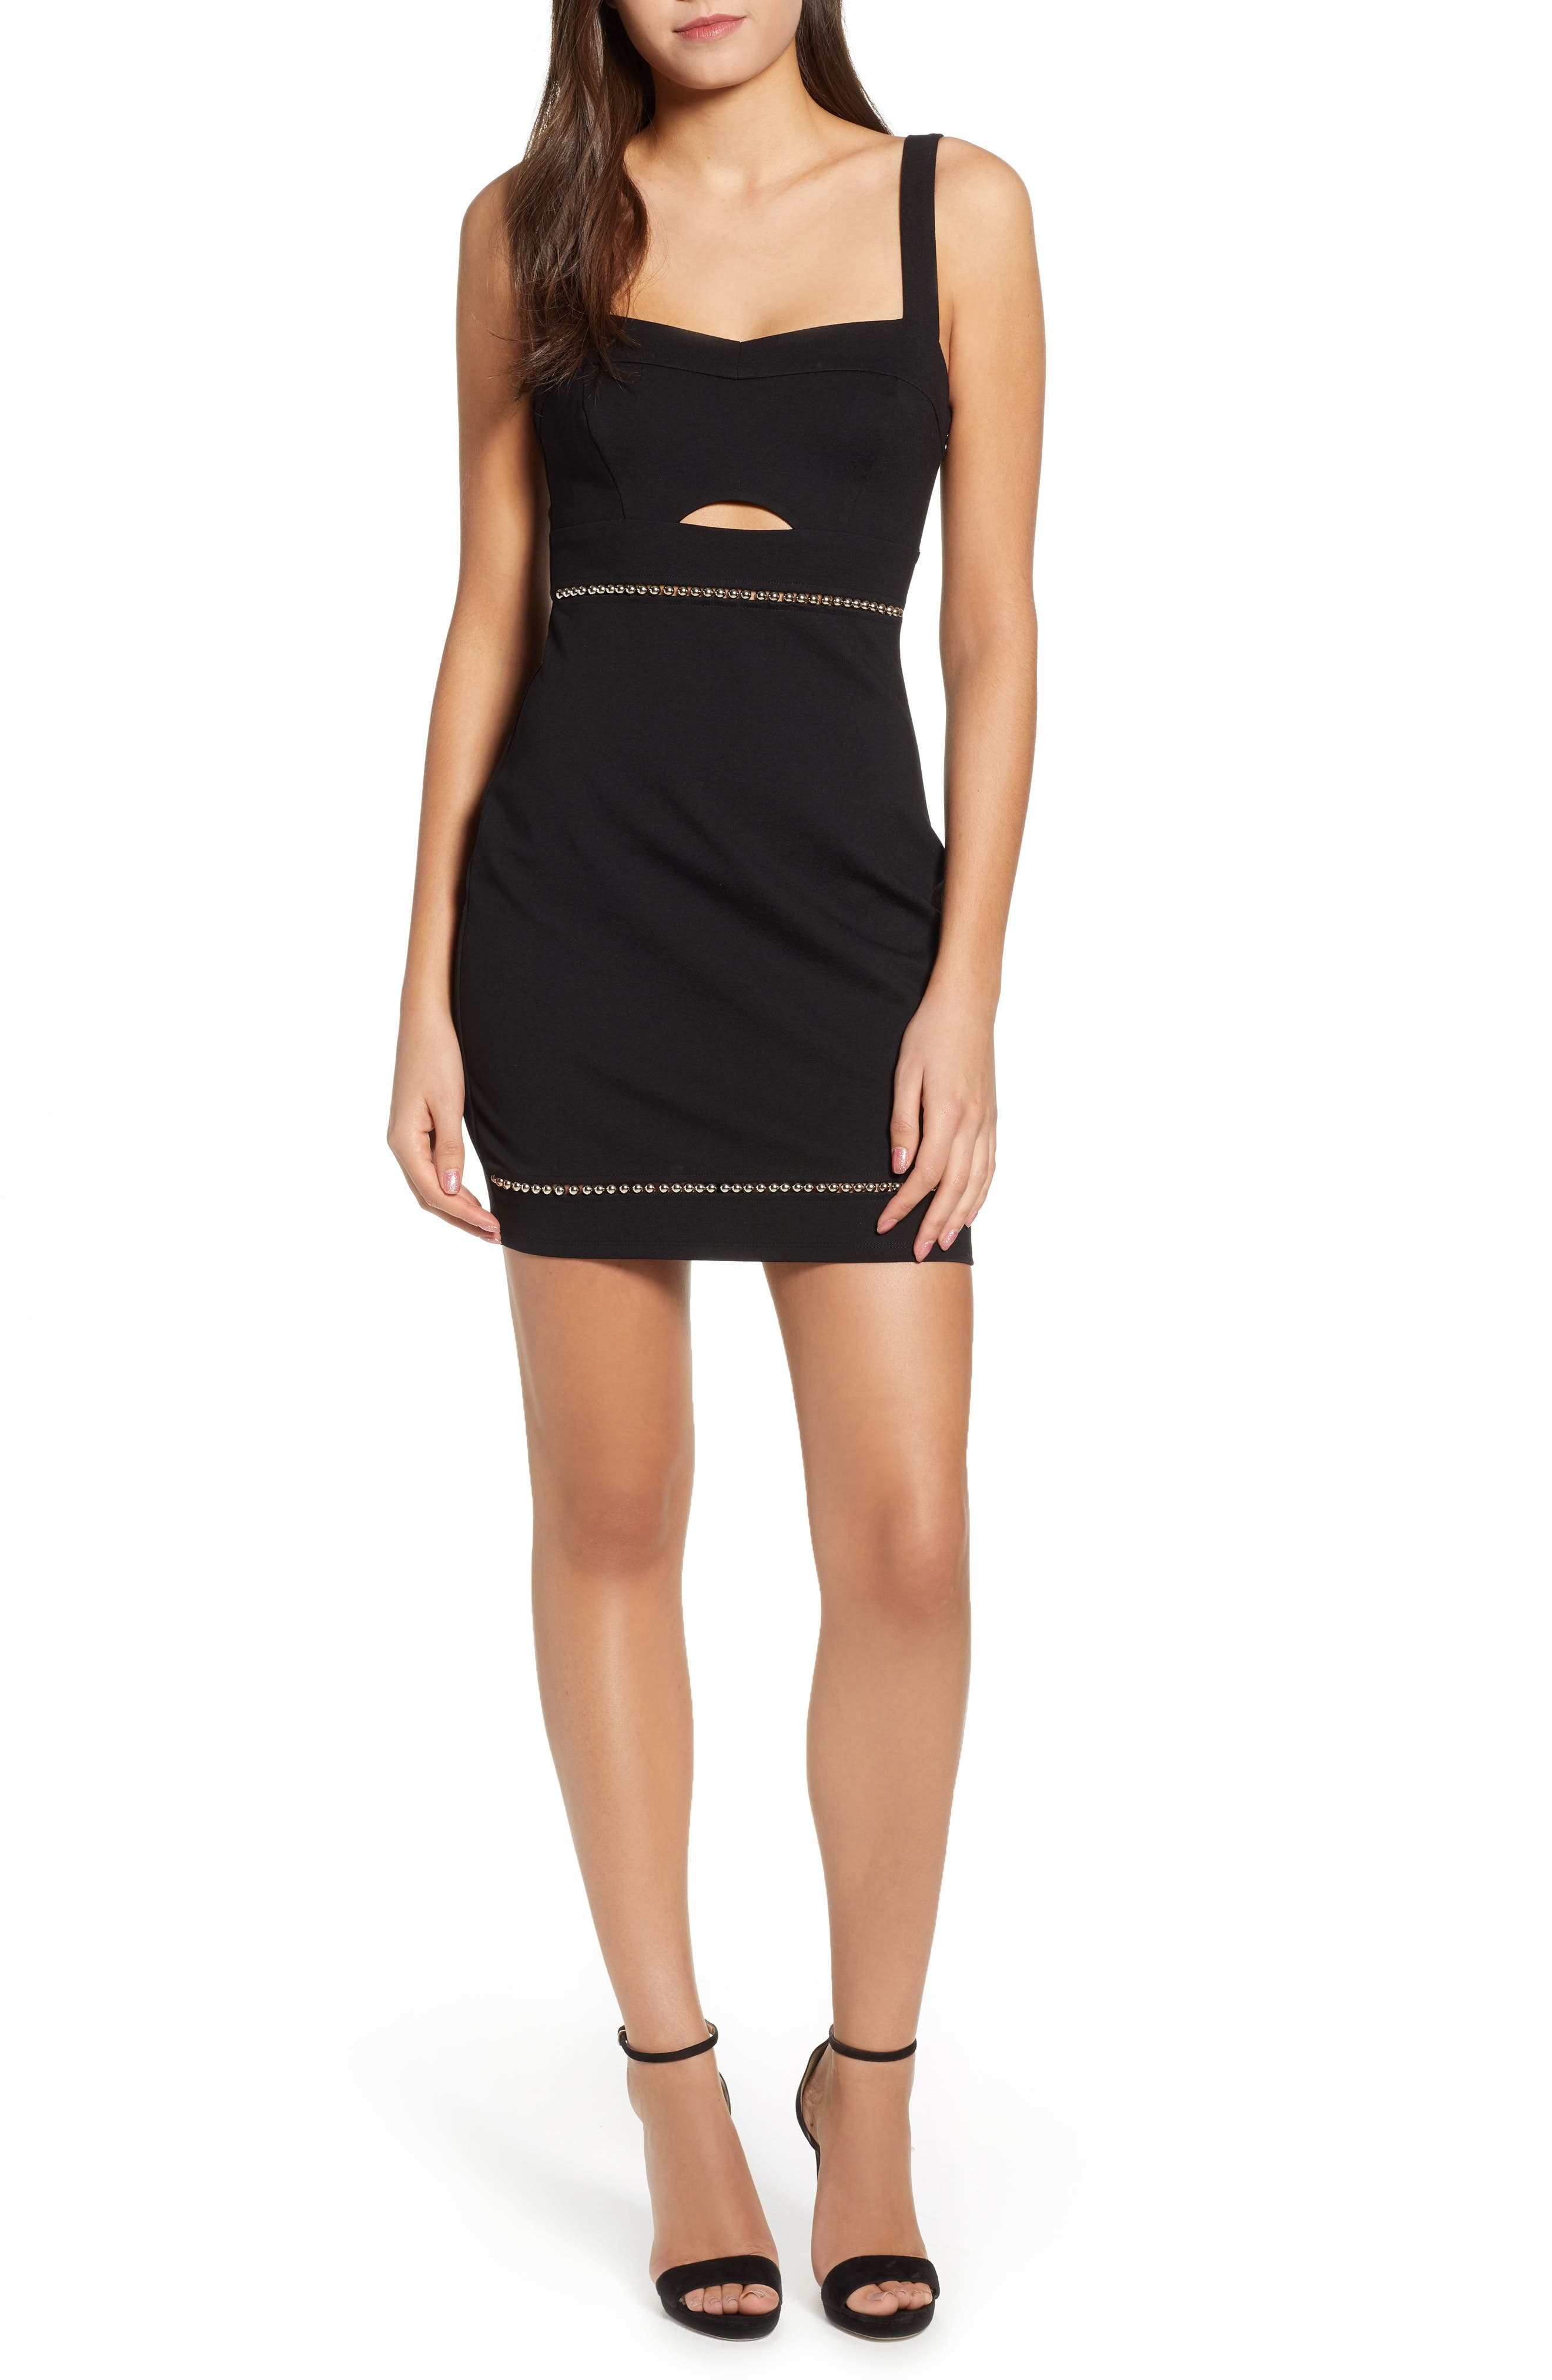 ASTR THE LABEL, Beaded Body-Con Dress, Main thumbnail 1, color, 001